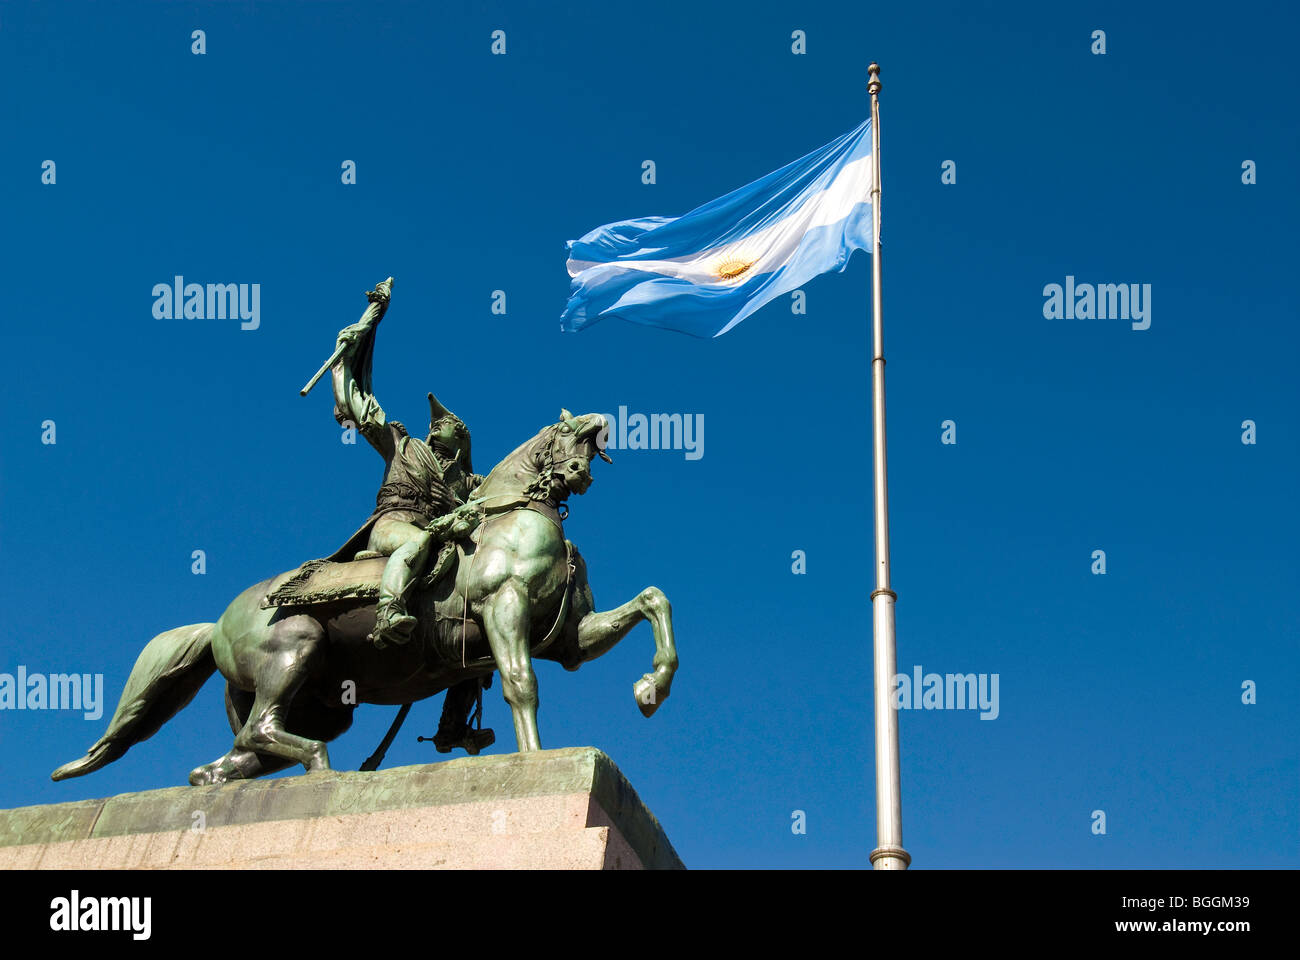 Statue of General Manuel Belgrano on his horse with the flag in Plaza de Mayor in Buenos Aires, Argentina - Stock Image